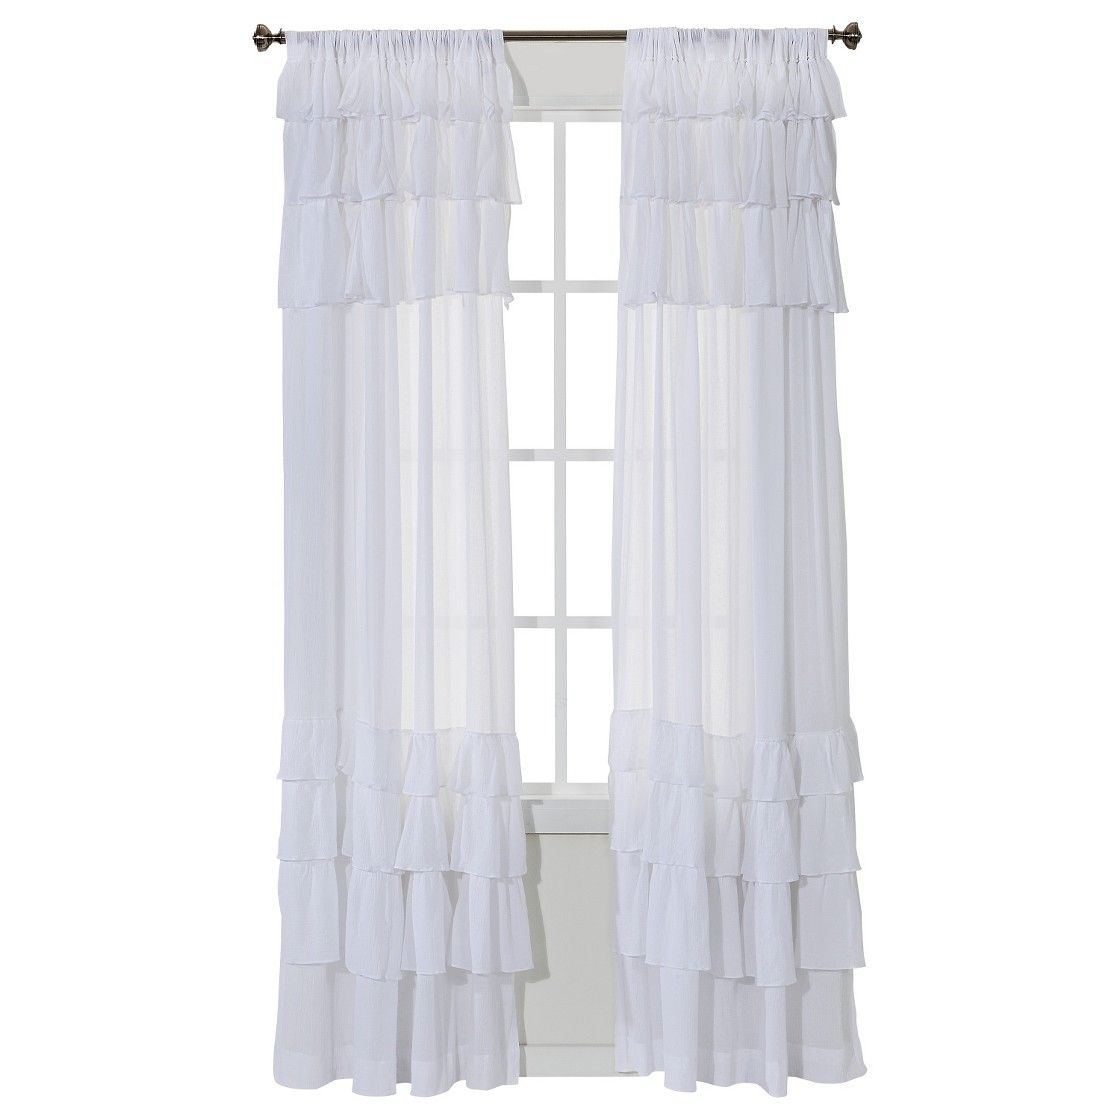 Ruffle Curtain Panel Simply Shabby Chic Horizontal Gauze Ruffle Curtain Panel White